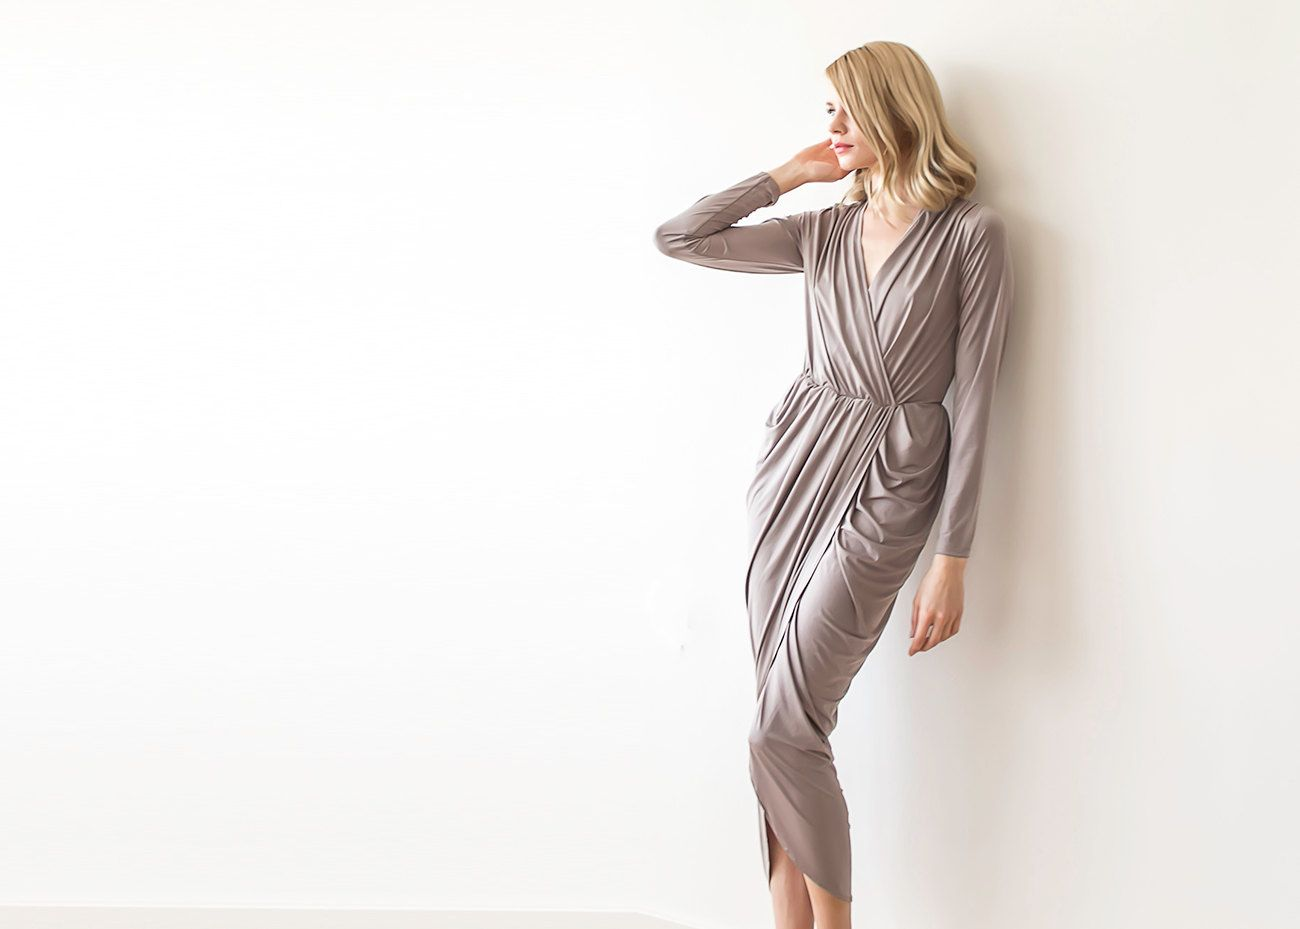 Formal taupe maxi wrap dress with long sleeves, Wrap formal taupe gown by BLUSHFASHION on Etsy https://www.etsy.com/listing/223735617/formal-taupe-maxi-wrap-dress-with-long